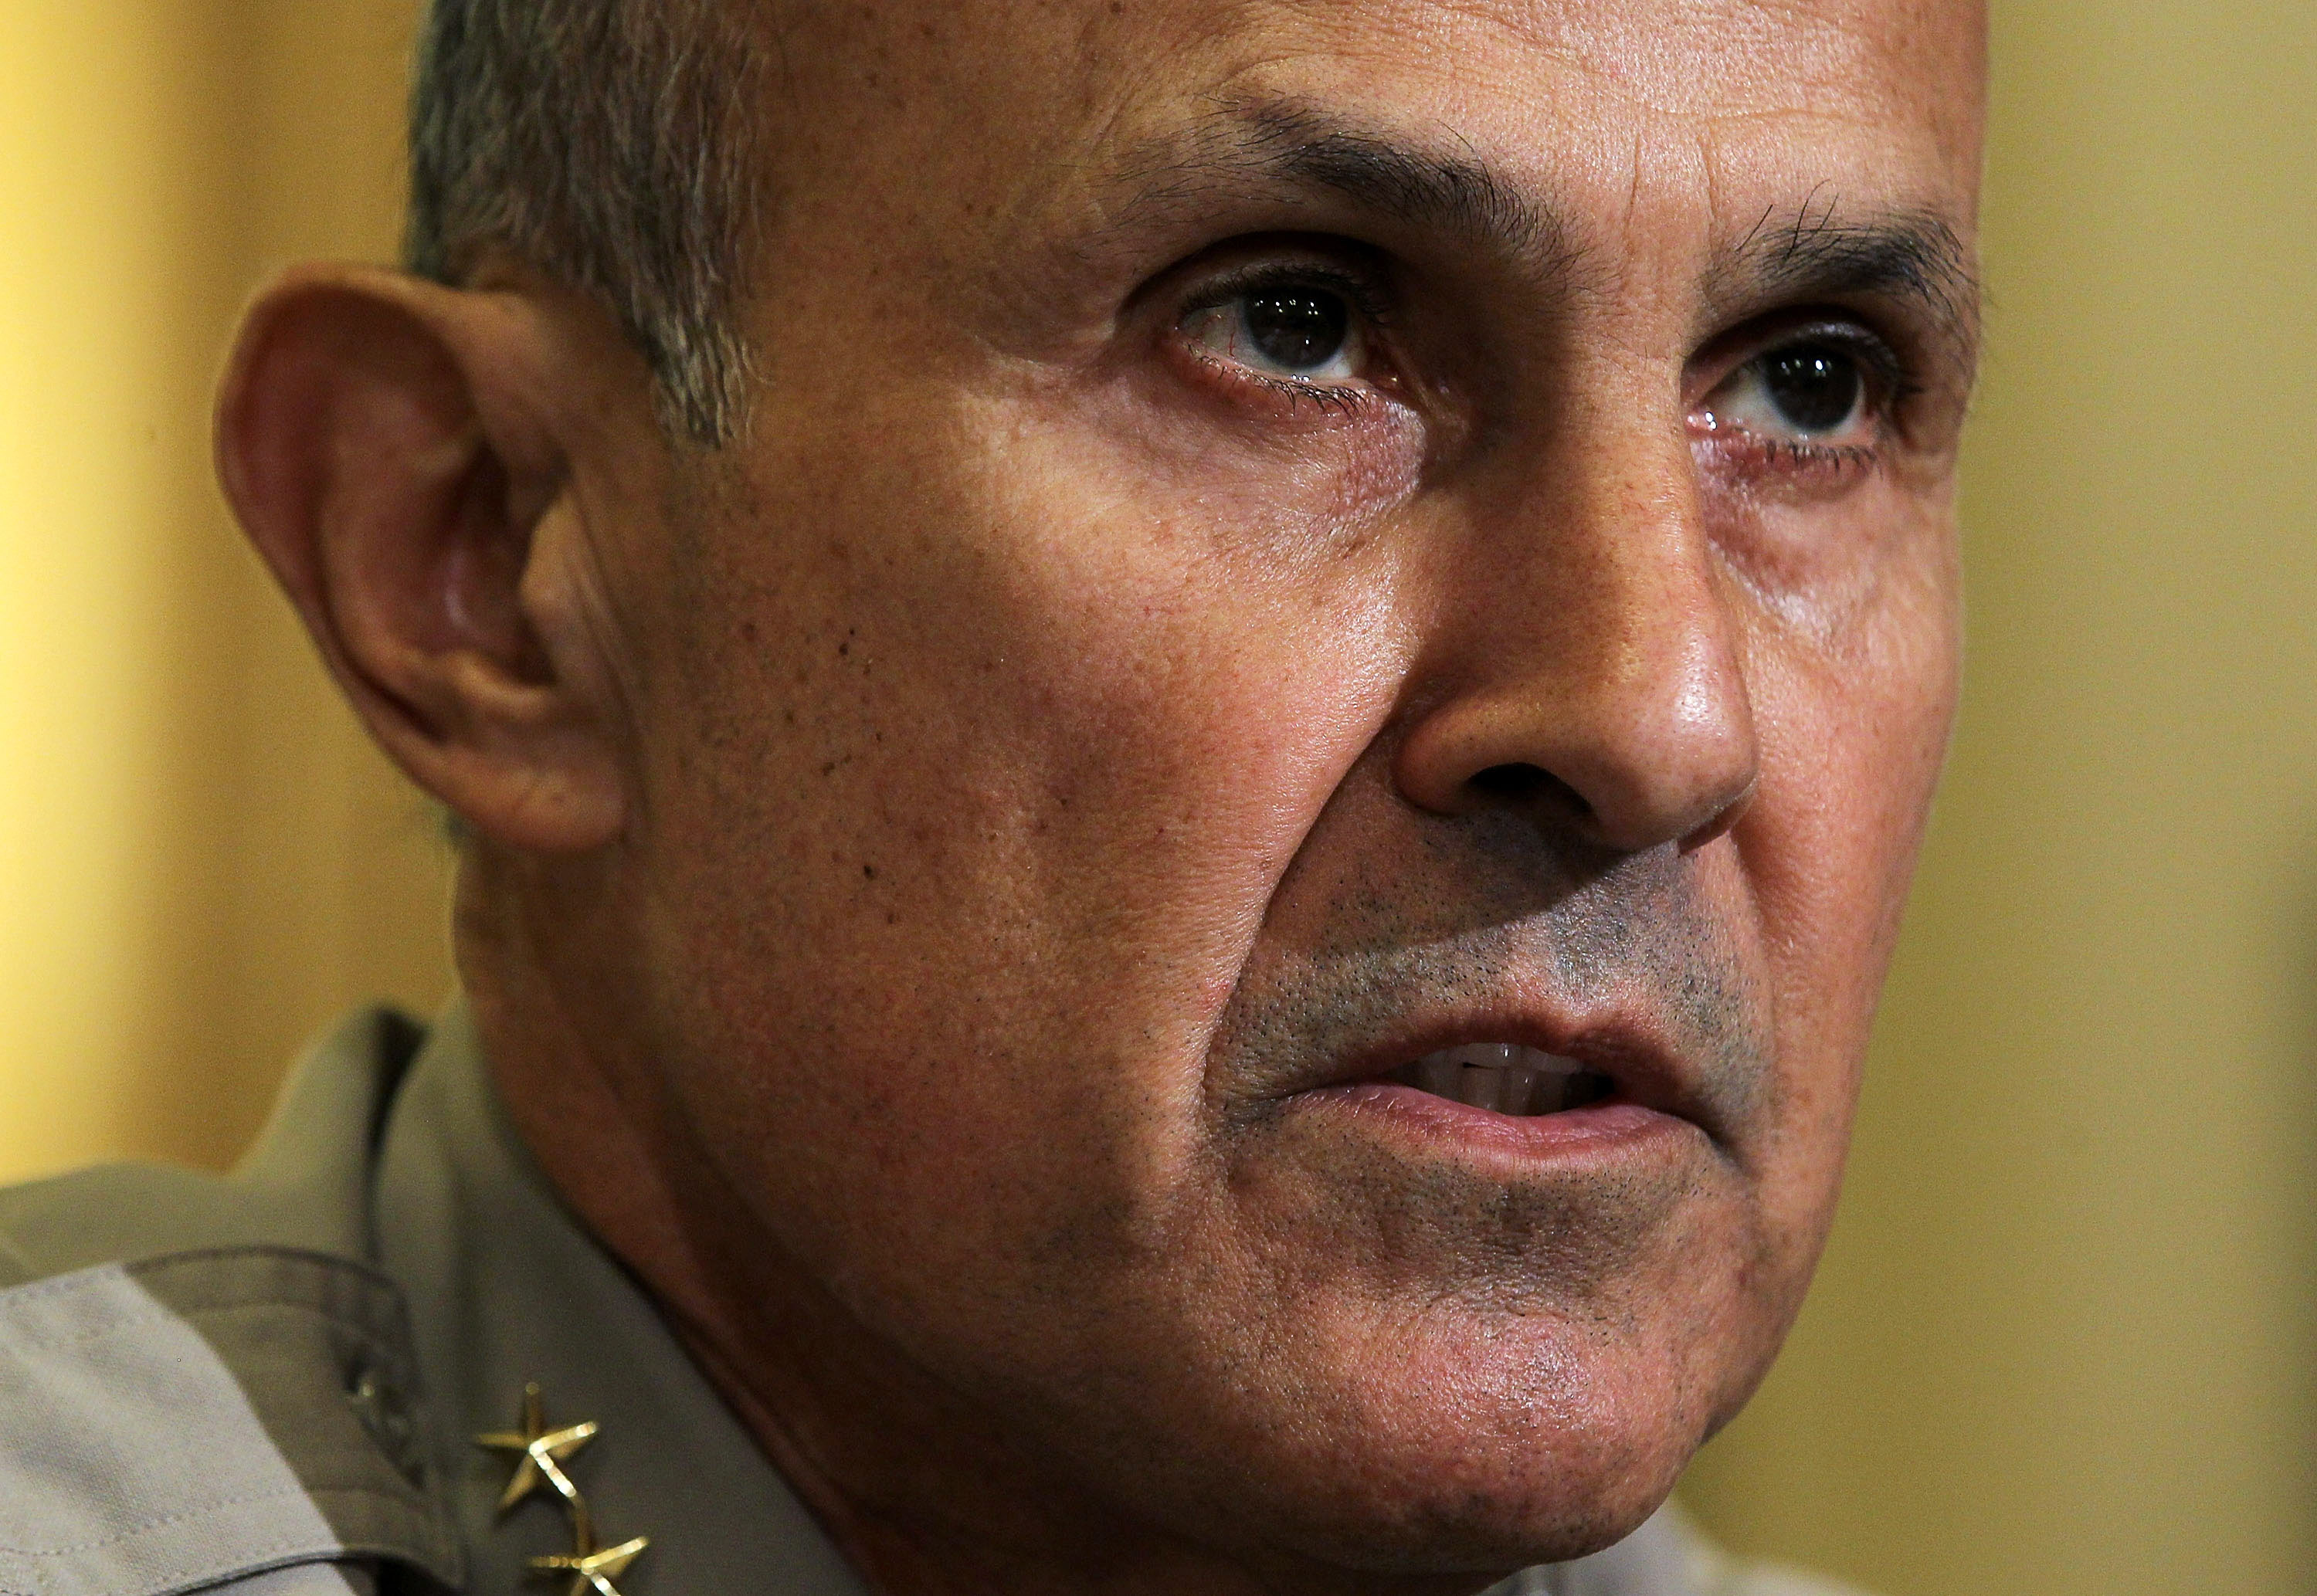 Sheriff Leroy Baca  of Los Angeles County, California, testifies during a hearing before the House Homeland Security Committee March 10, 2011 on Capitol Hill in Washington, DC. The Homeland Security held the hearing to examine  The Extent of Radicalization in the American Muslim Community and that Community's Response.